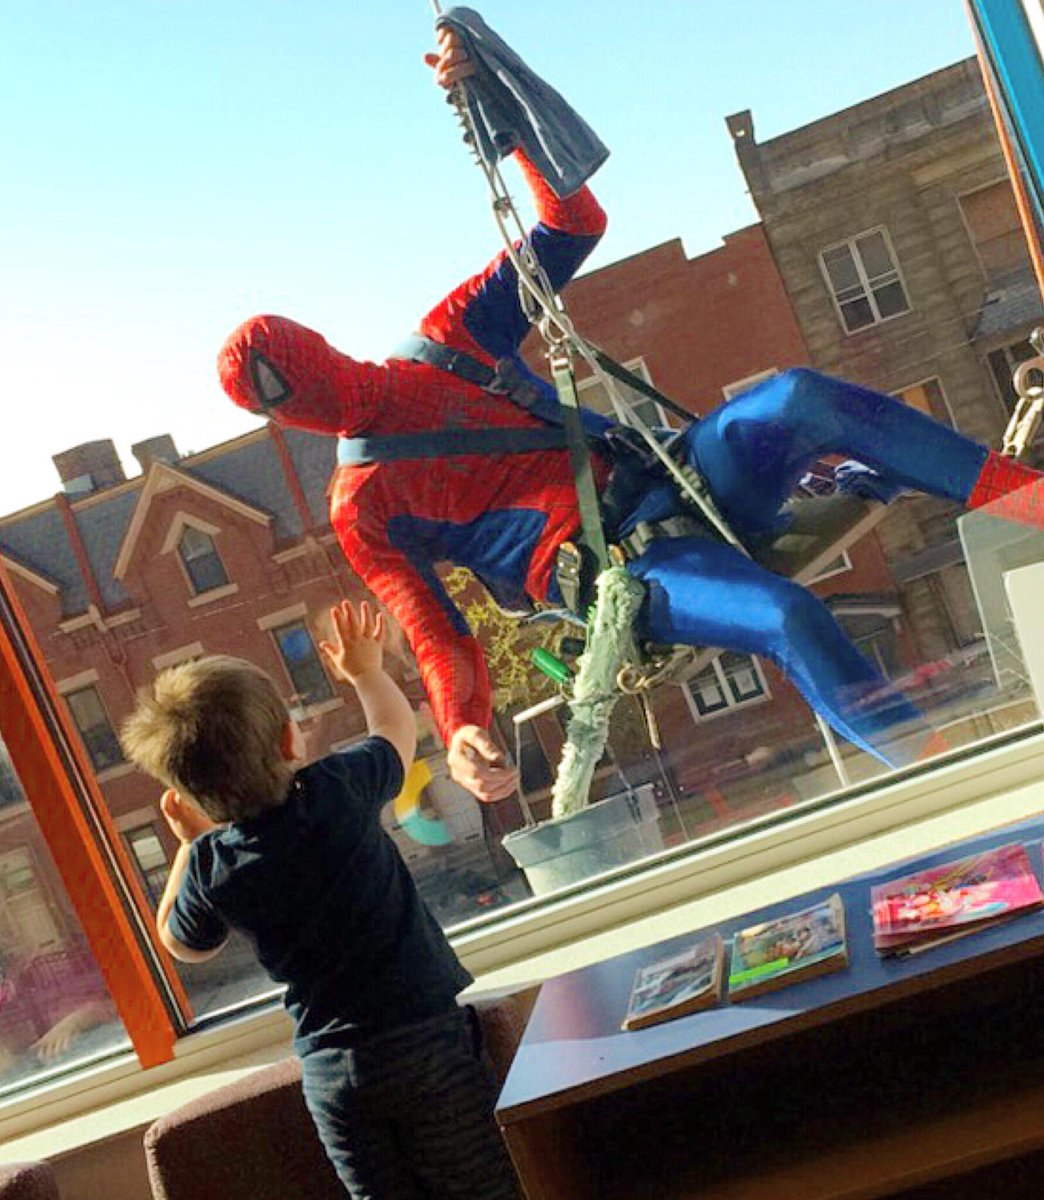 Saying hello to Spider-Man! #childrenspgh http://t.co/3LjKRKFesg